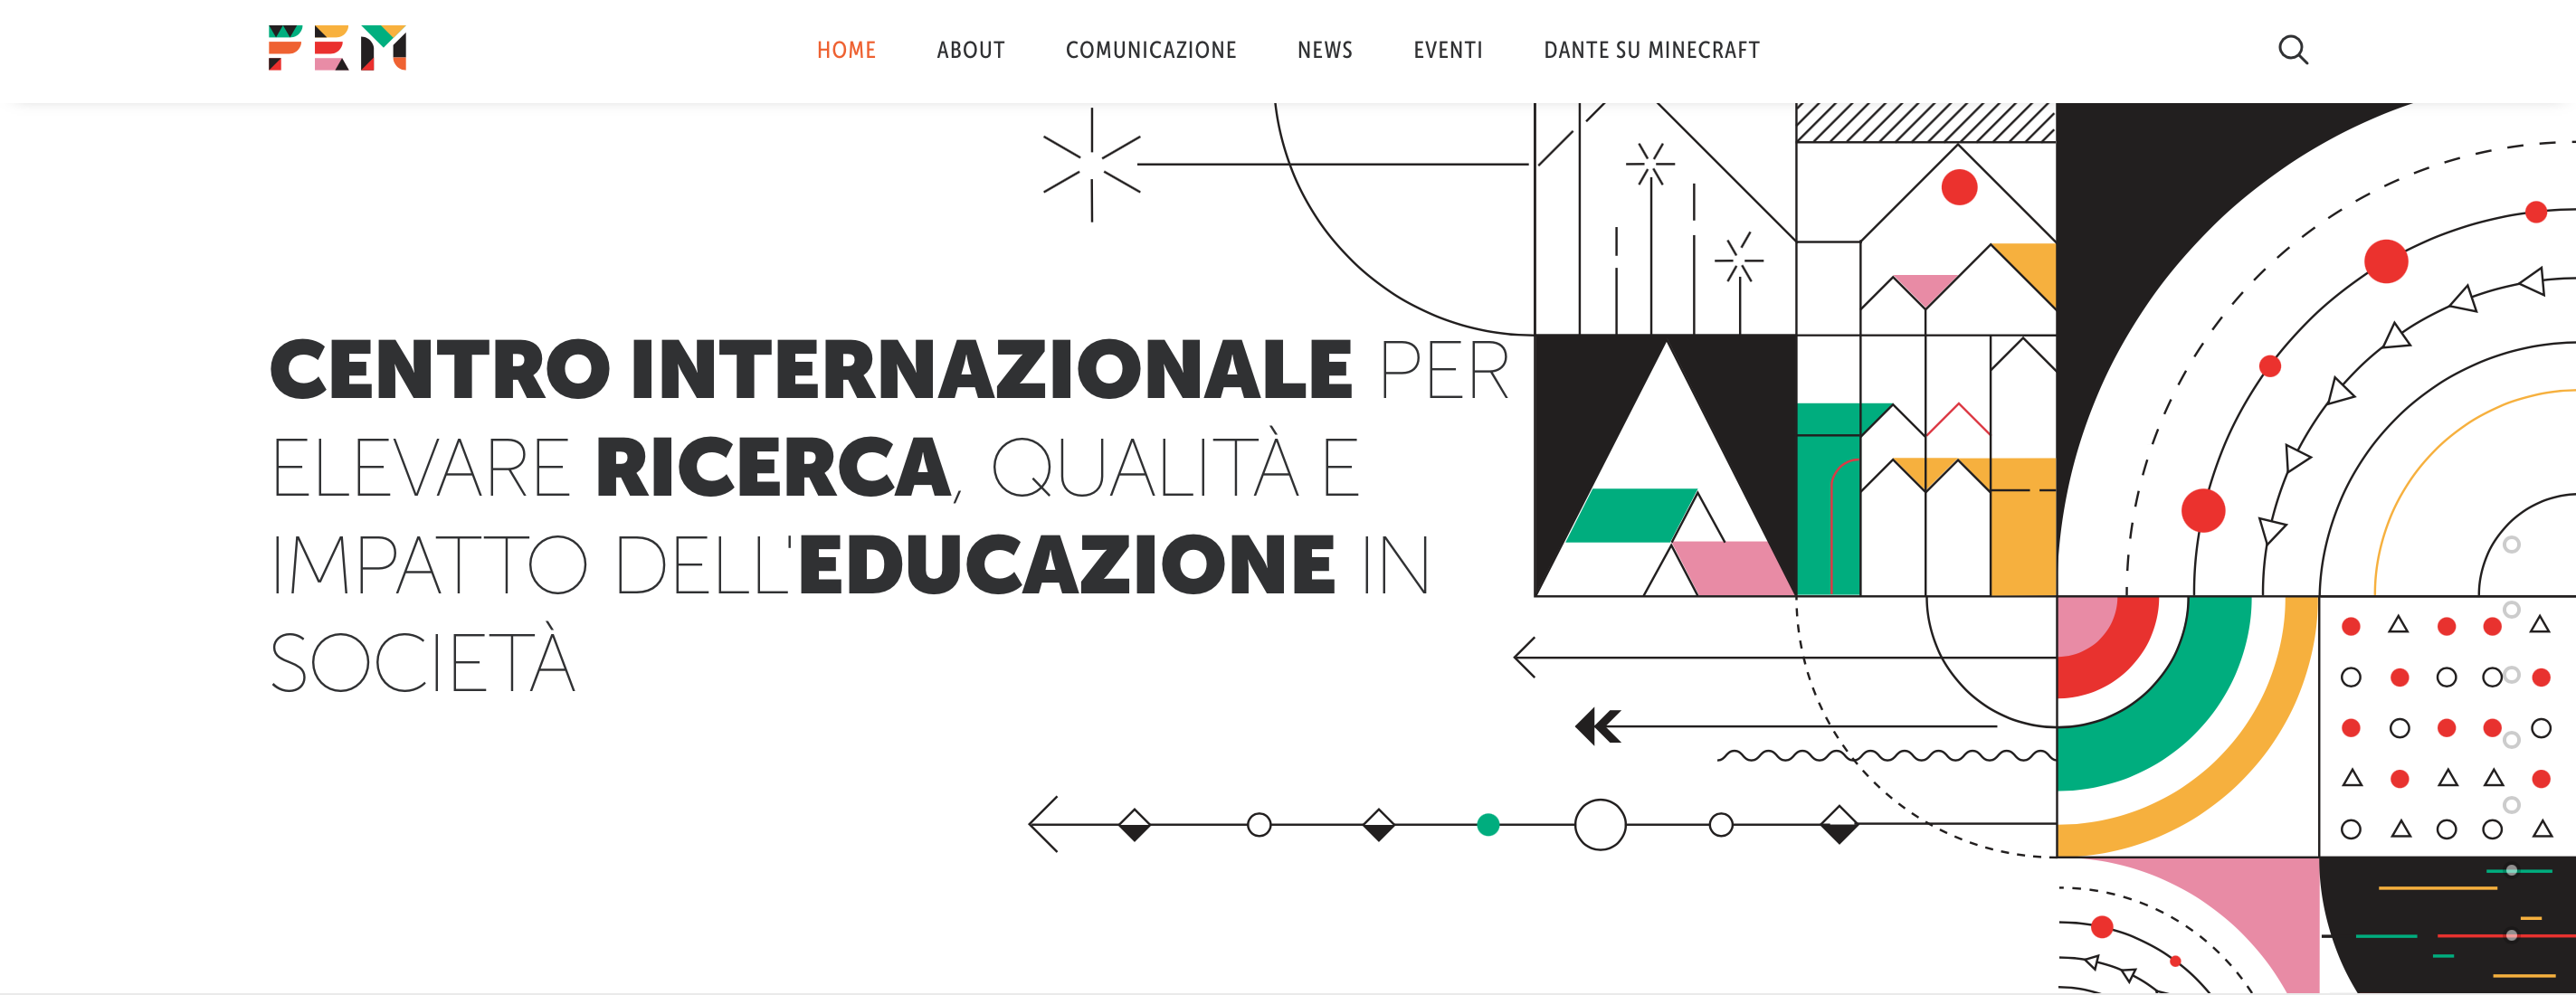 [Video] Educare nei media e con i media, Rivoltella al webinar FEM